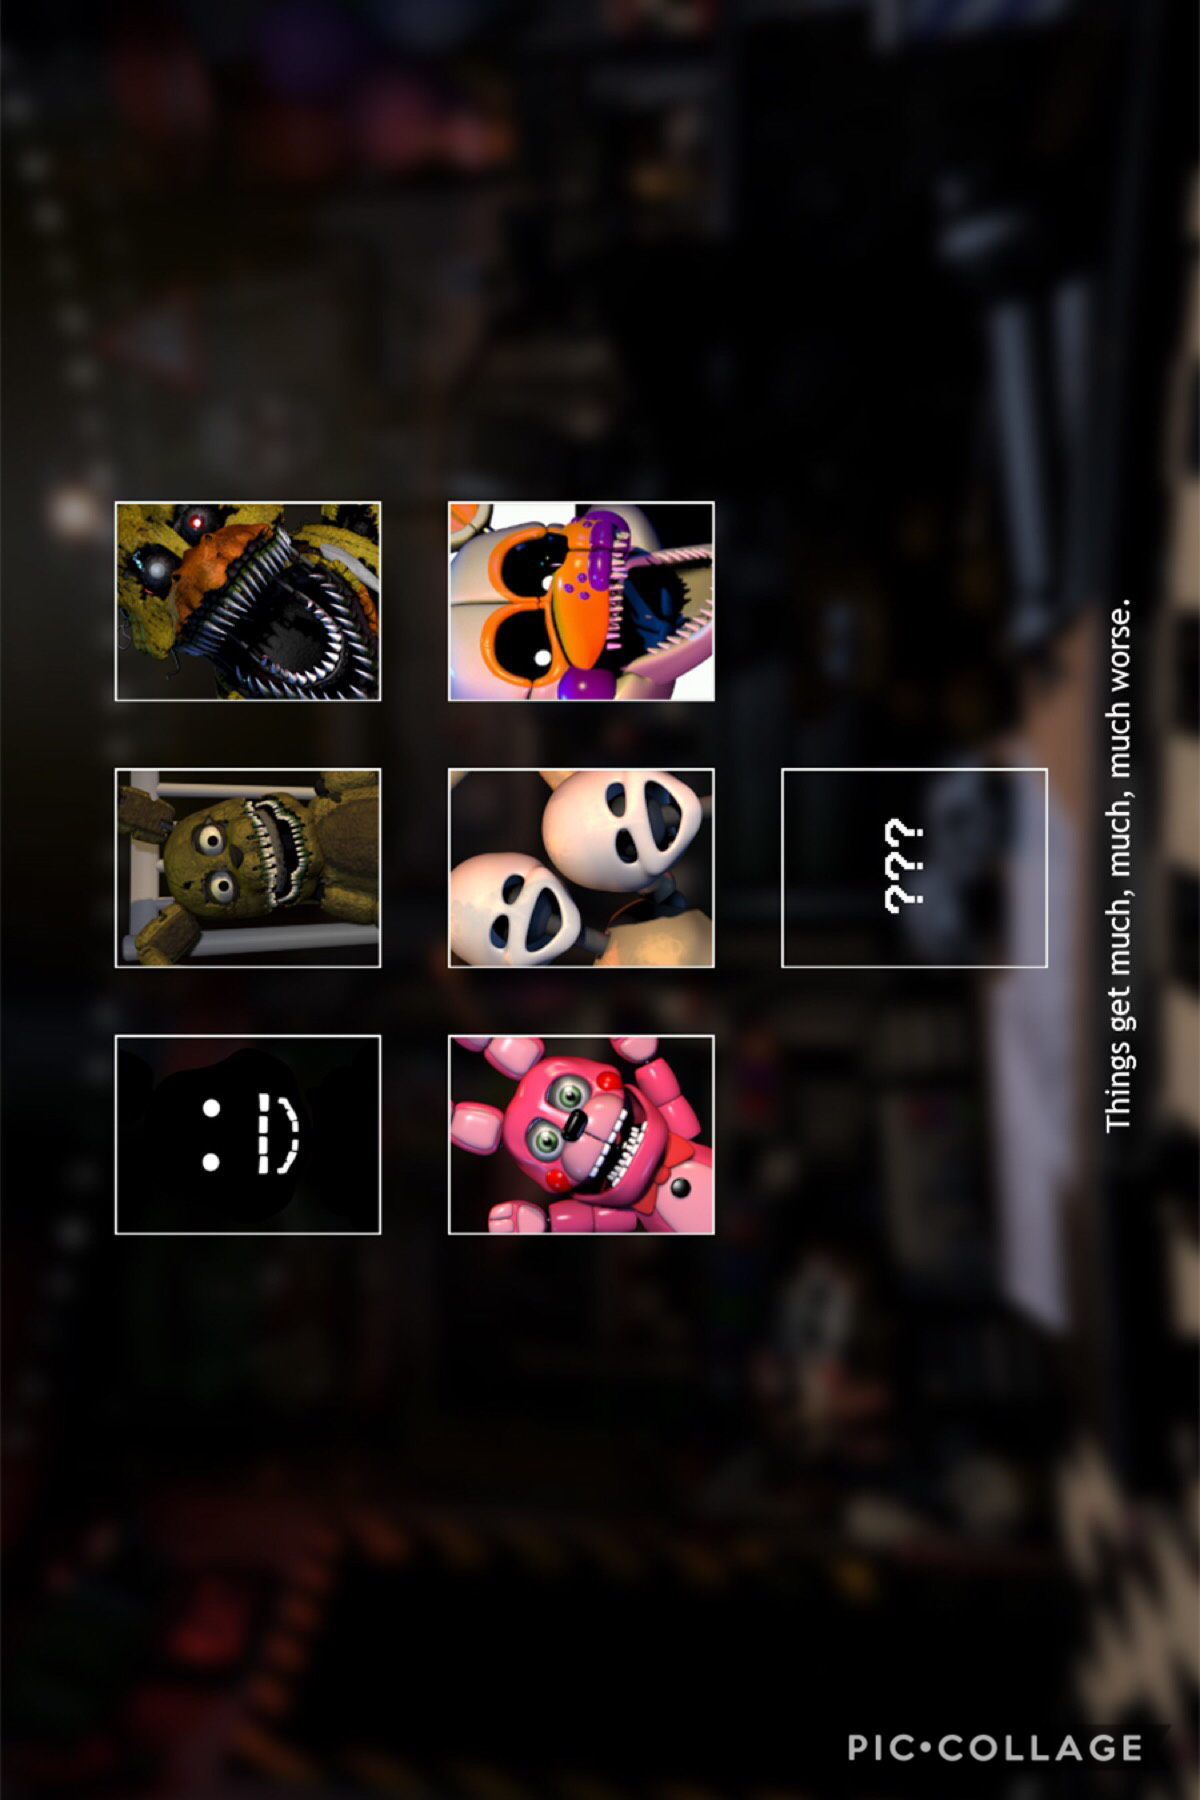 One of my favorites has been added to the Ultimate Custom Night, and it's Lolbit! BUT.. he has MORE to throw at us!! Oh no!! 🔥🔥🔥🔥🔥